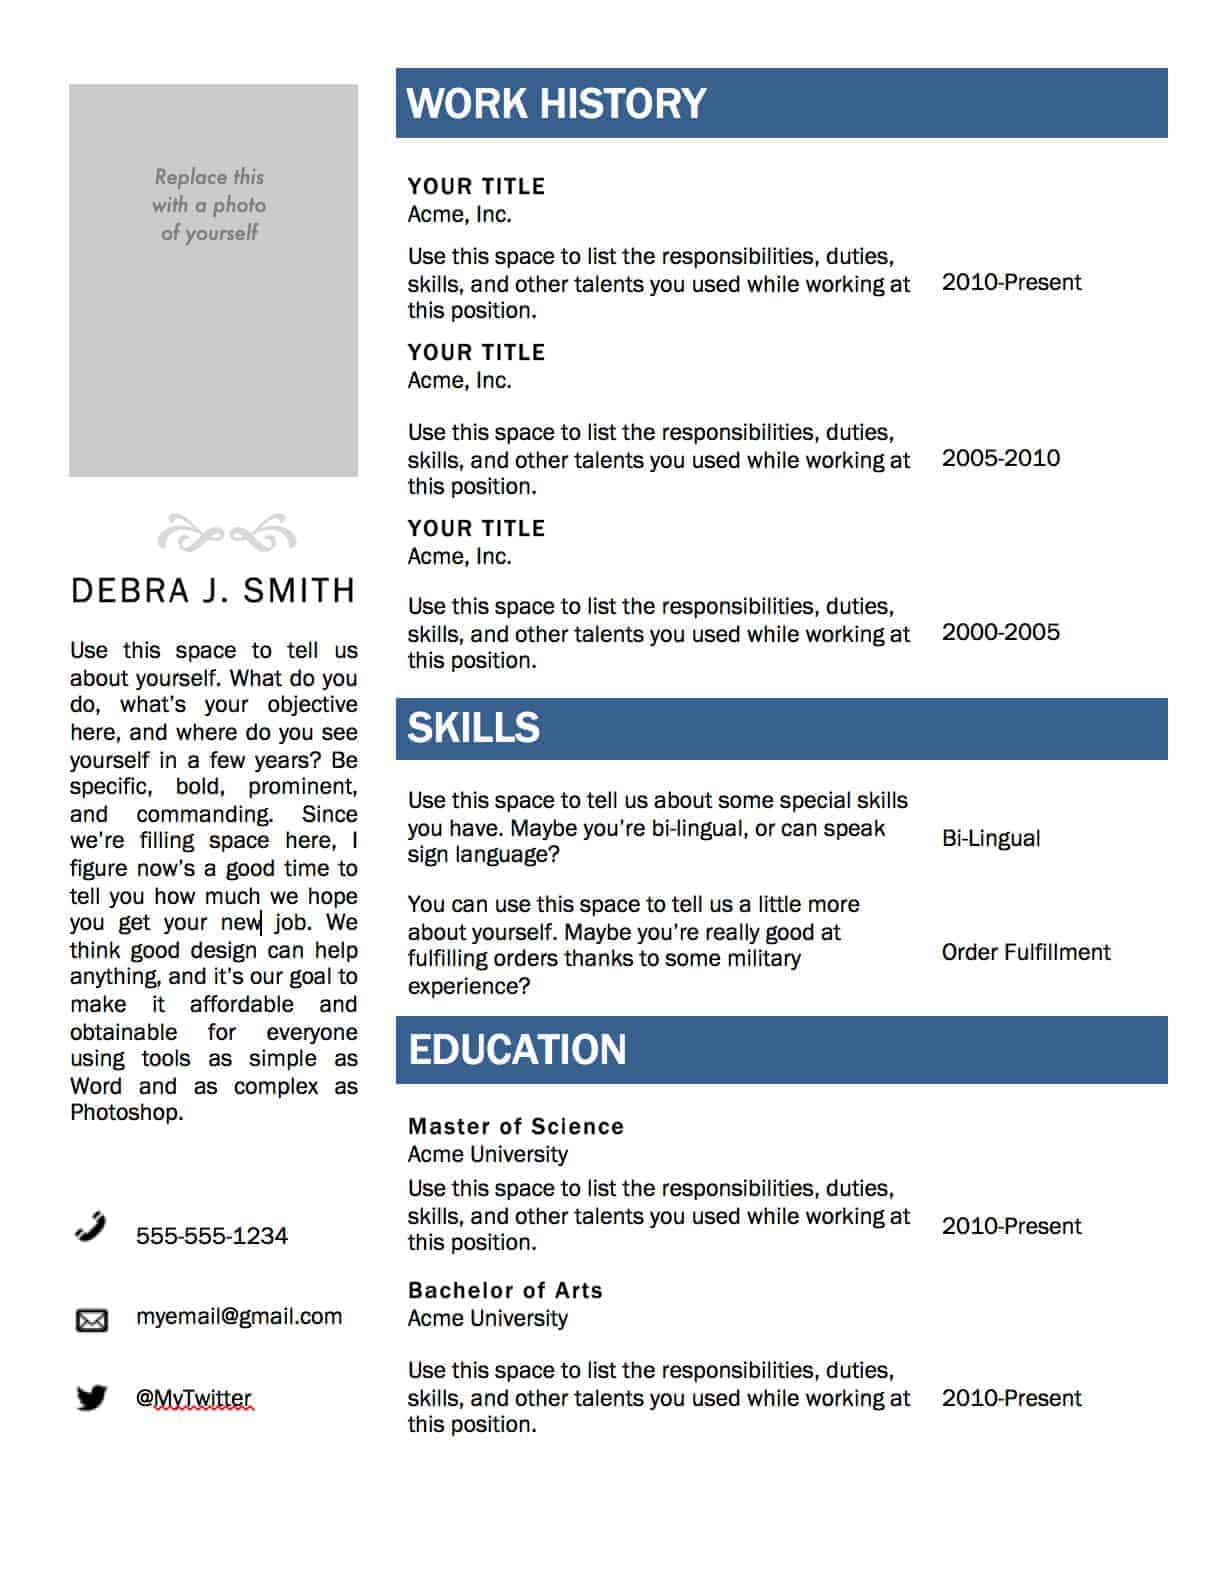 sample resume word template free for mac onlineanywhere templates os template01 furniture Resume Free Resume Templates Mac Os X